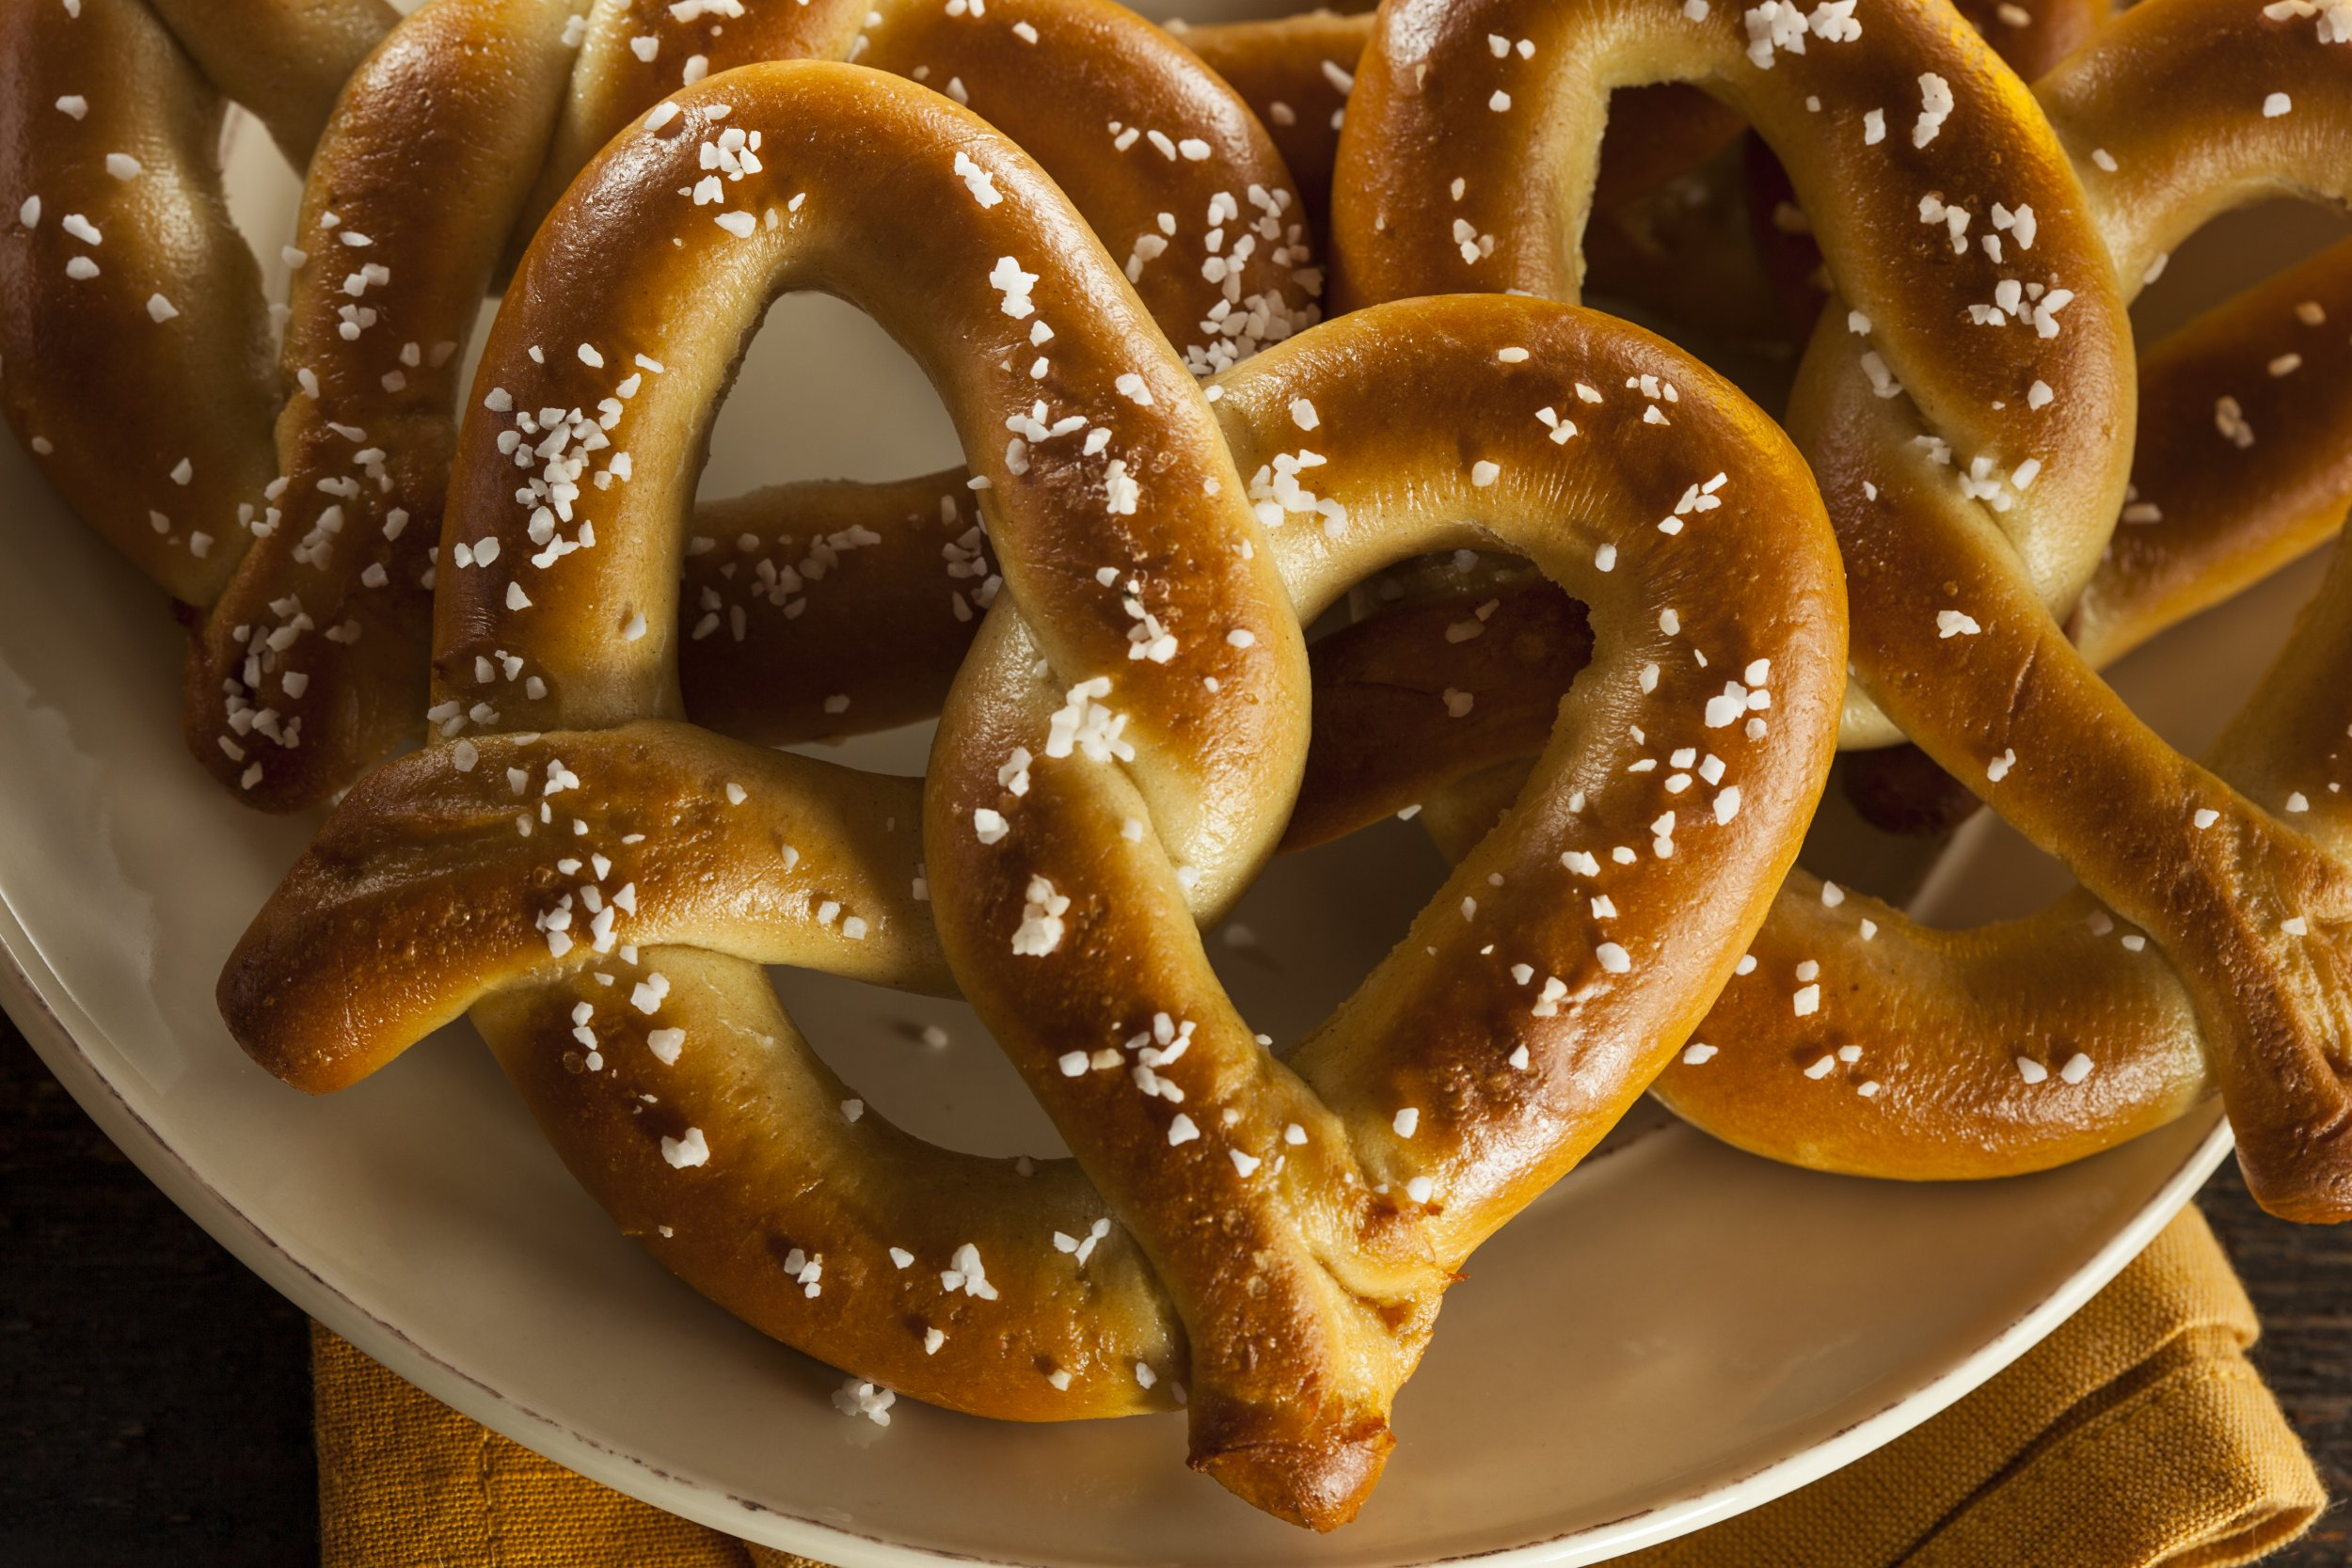 Pretzel Getty Images